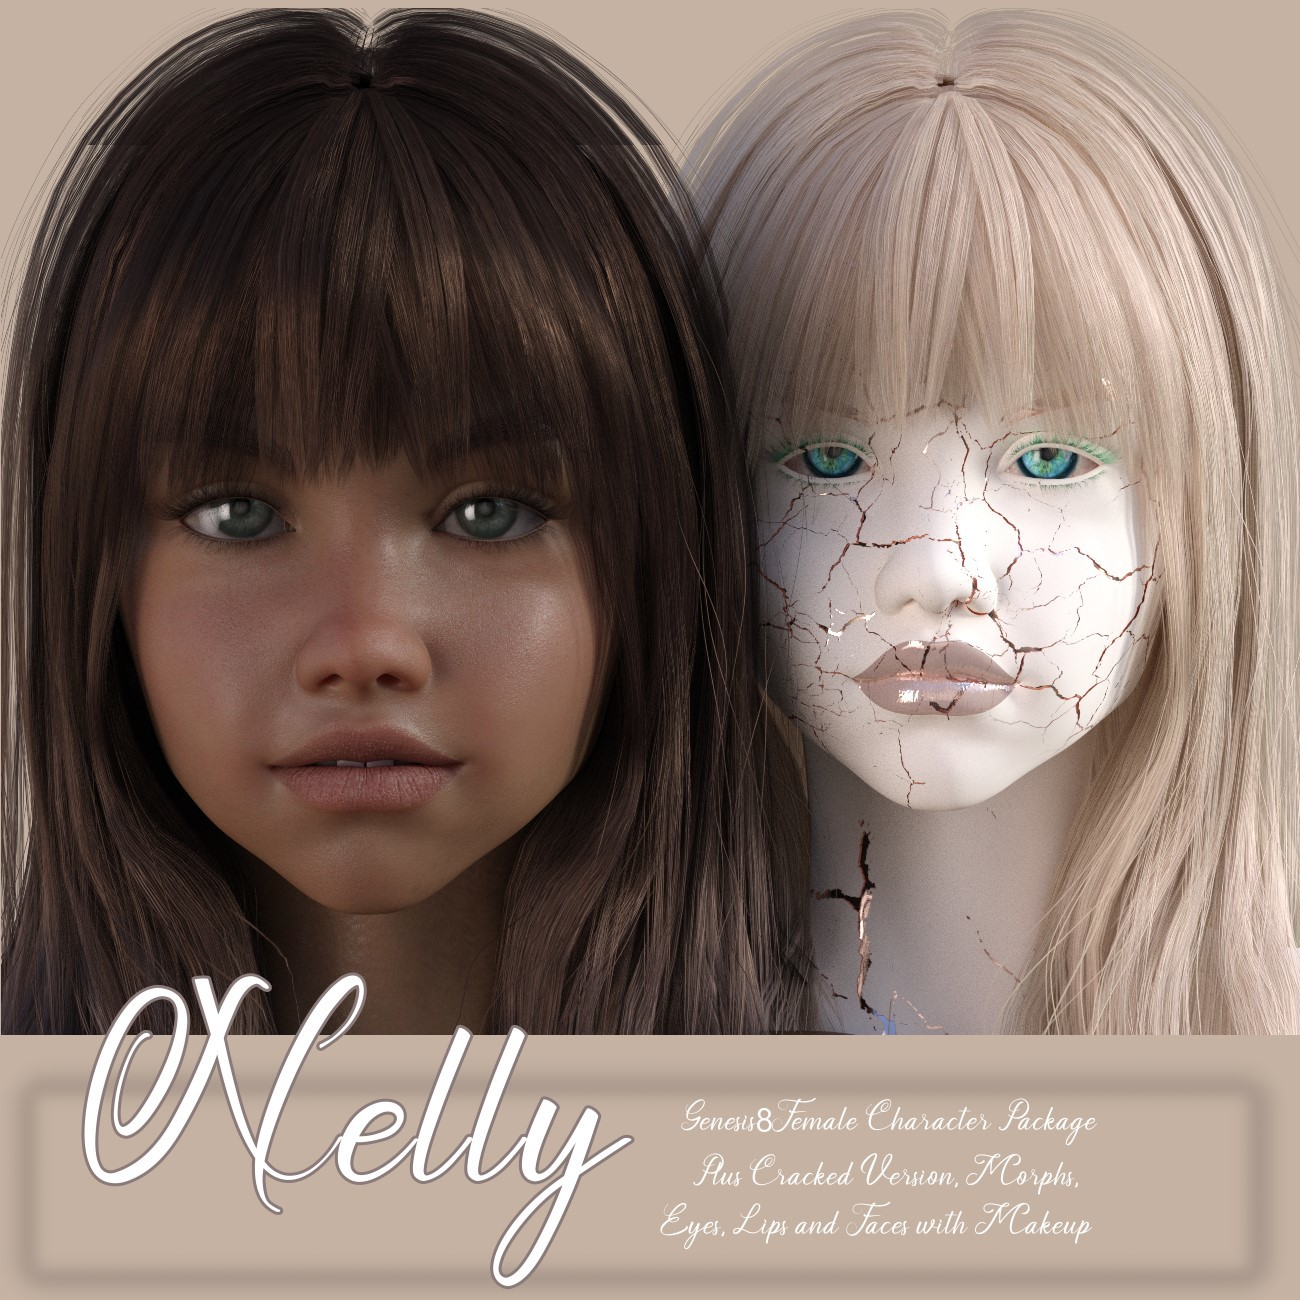 TEEN- NELLY G8F by LUNA3D